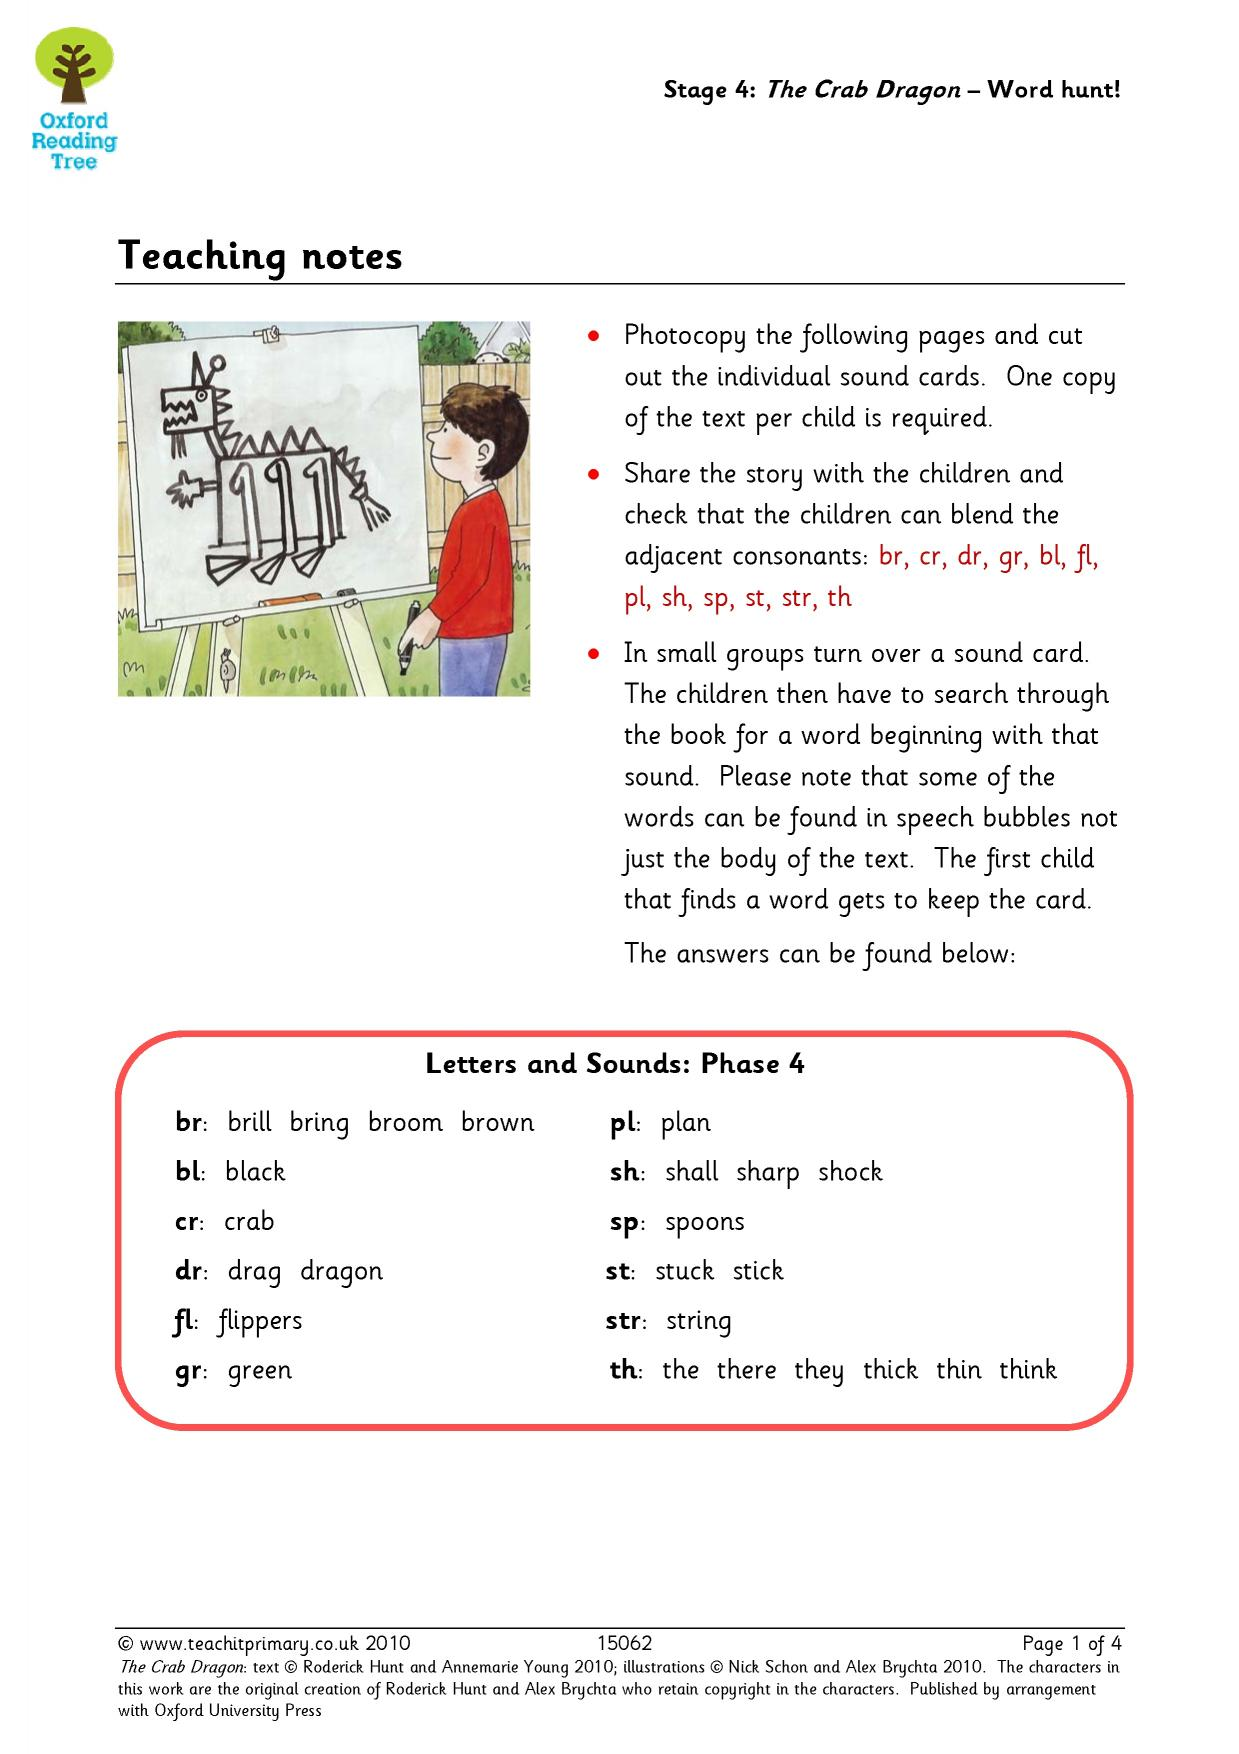 Phase 4 Phonics Worksheets Printable Worksheets And Activities For Teachers Parents Tutors And Homeschool Families